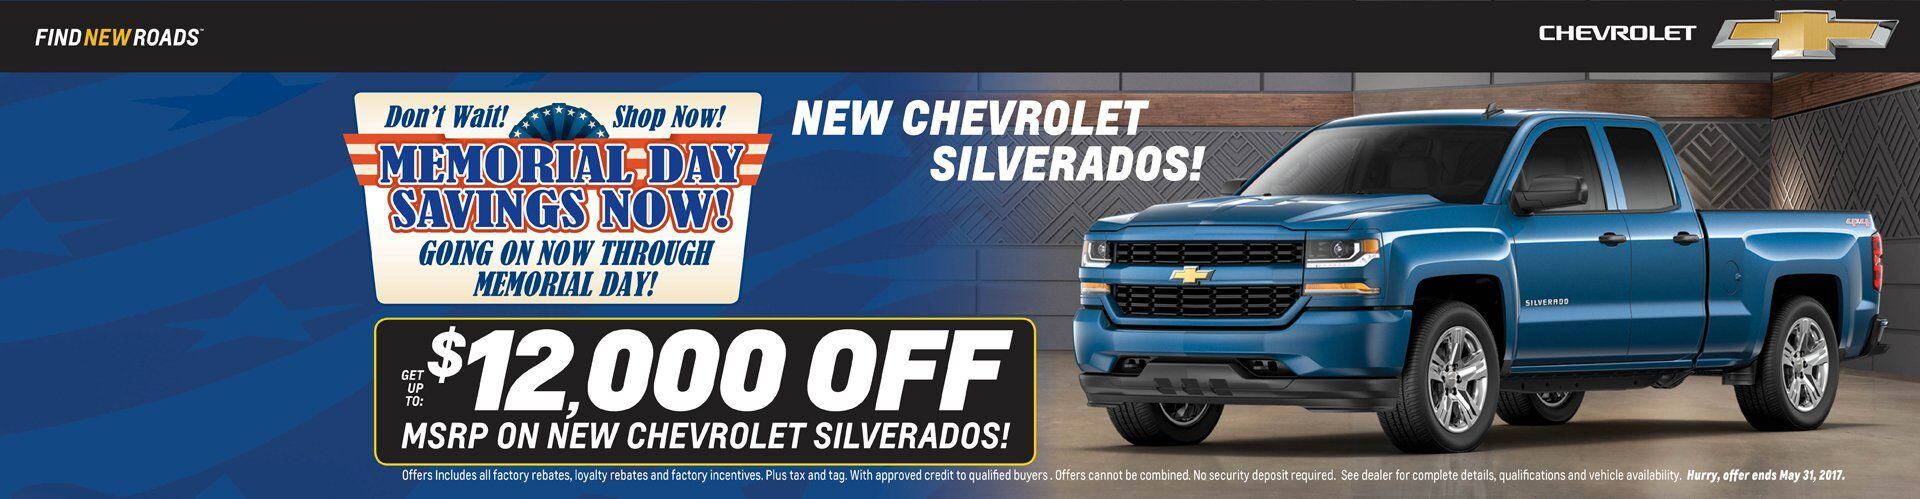 2017 Chevrolet Silverados Get Up To $12,000 Off MSRP!